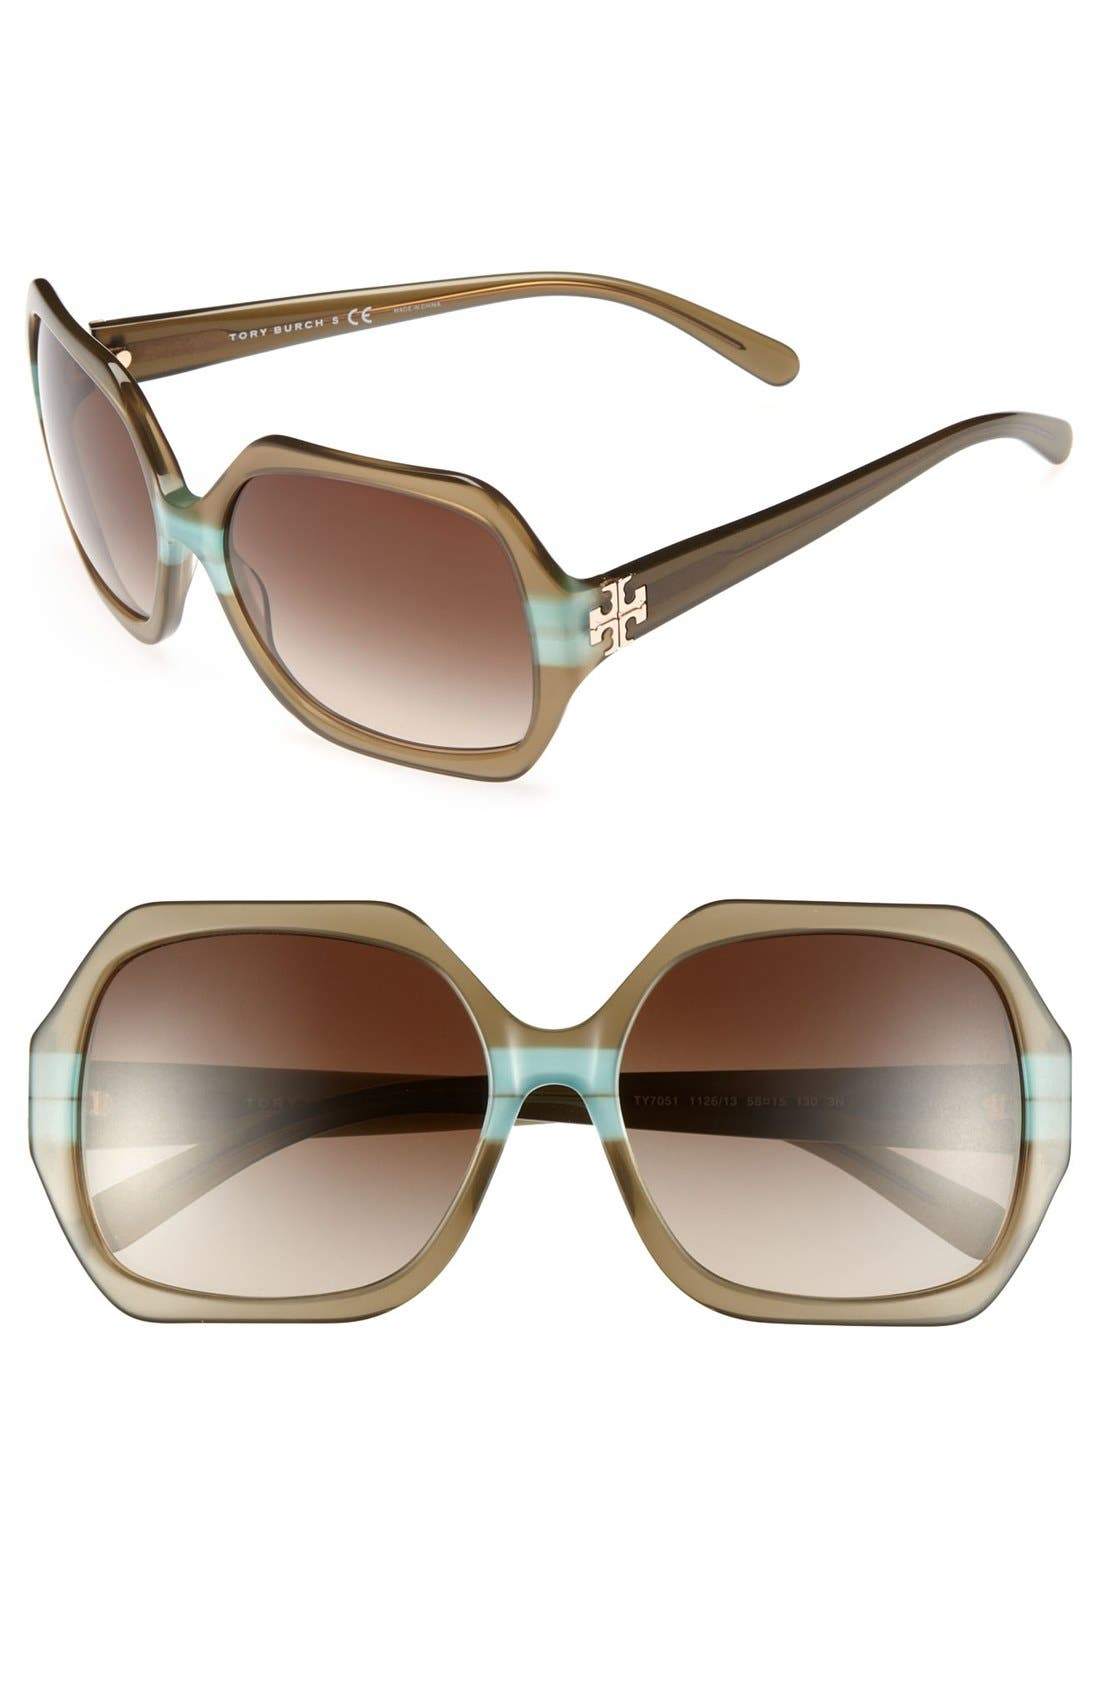 Alternate Image 1 Selected - Tory Burch 58mm Sunglasses (Online Only)